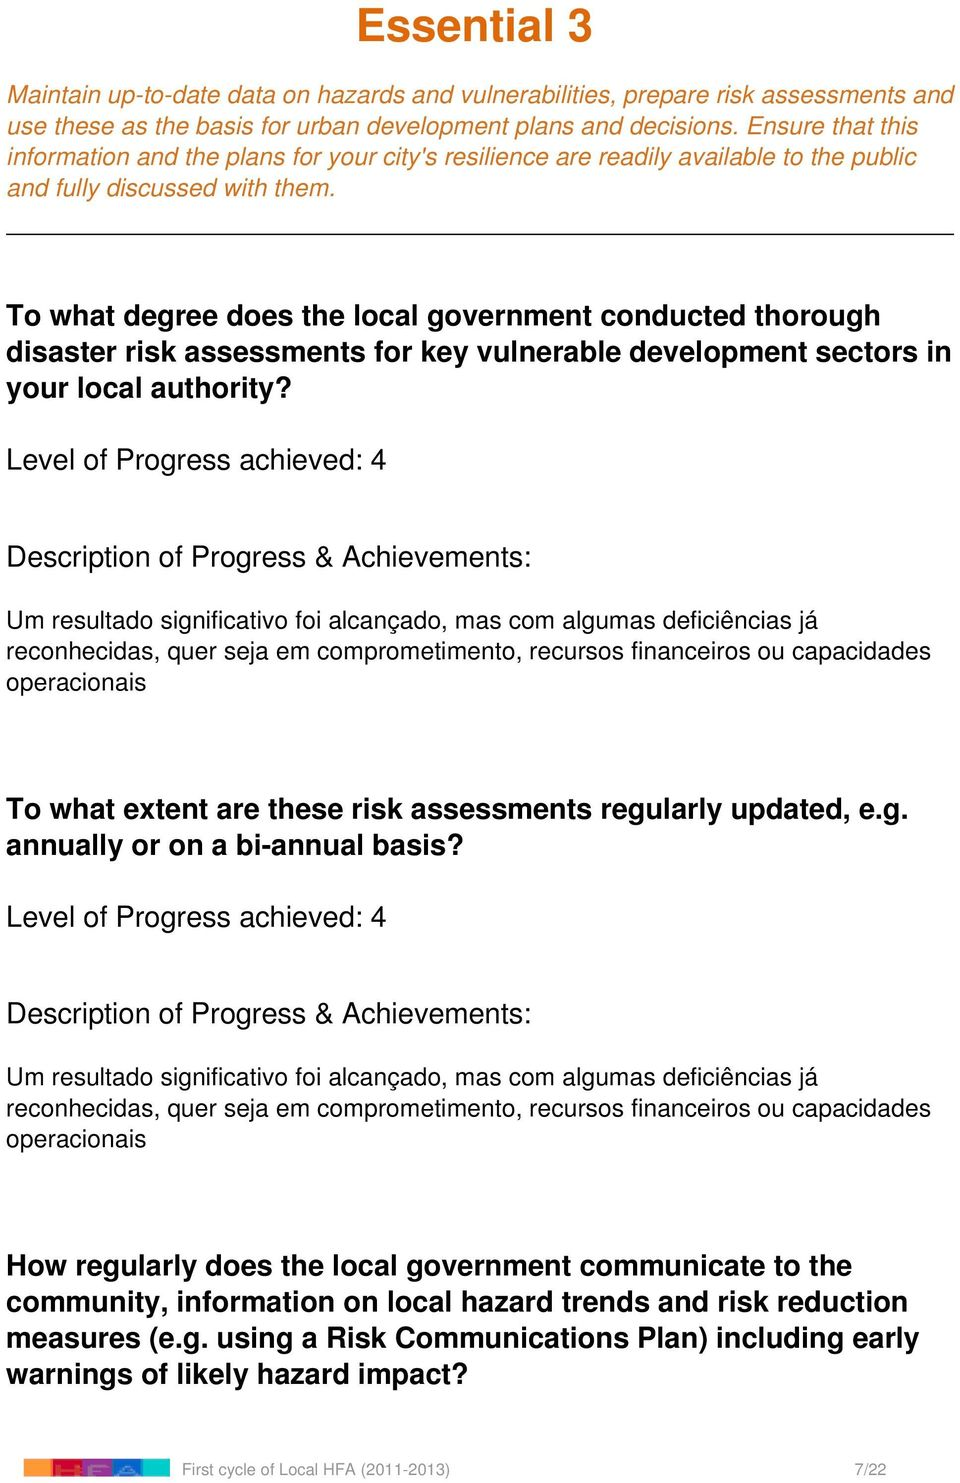 To what degree does the local government conducted thorough disaster risk assessments for key vulnerable development sectors in your local authority?